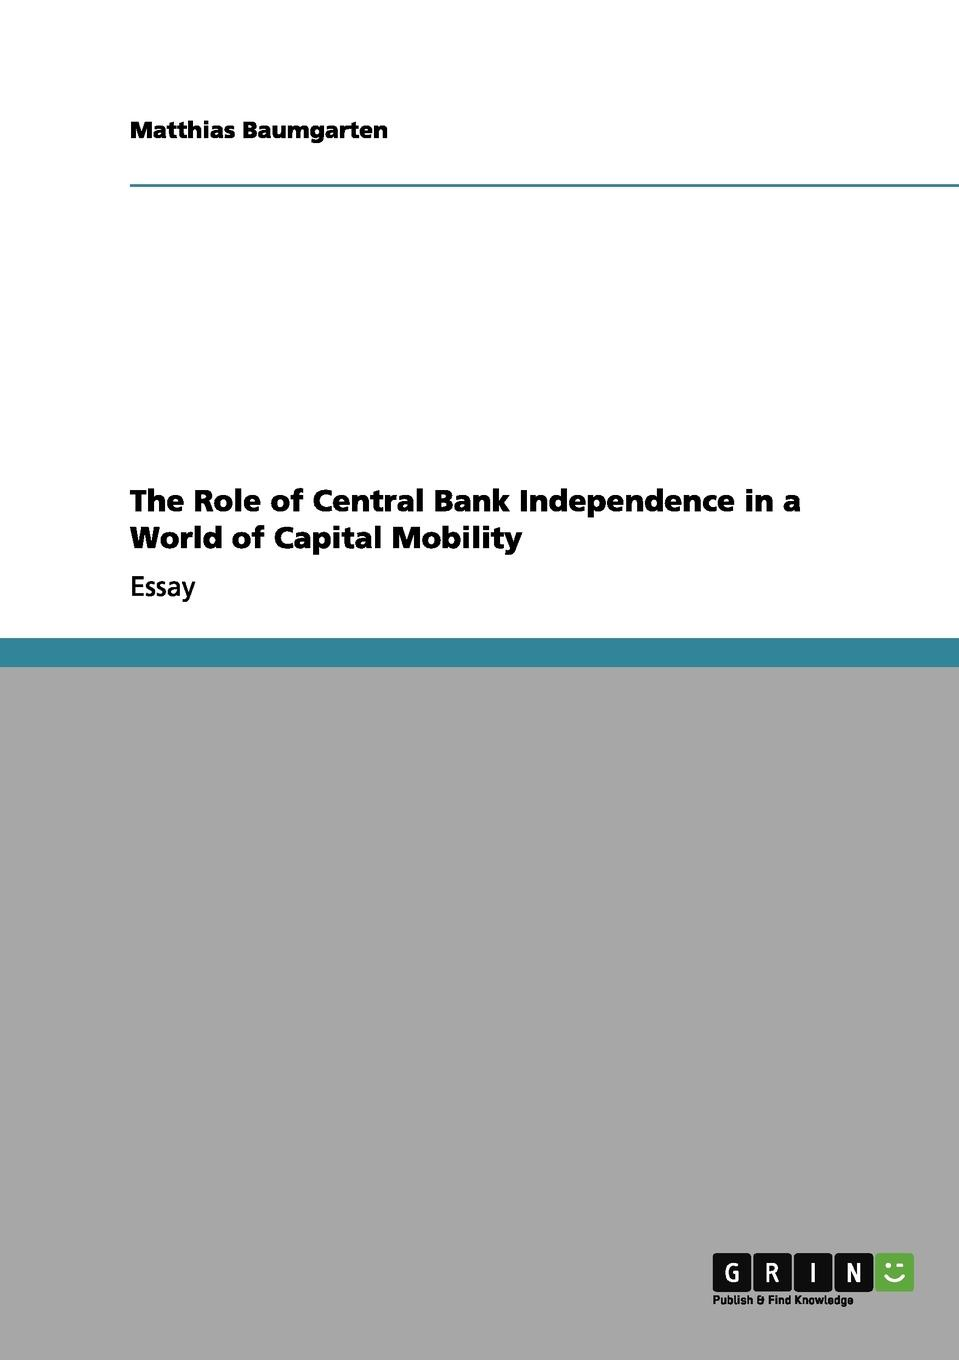 Matthias Baumgarten The Role of Central Bank Independence in a World of Capital Mobility capitals of capital a history of international financial centres 1780 2005